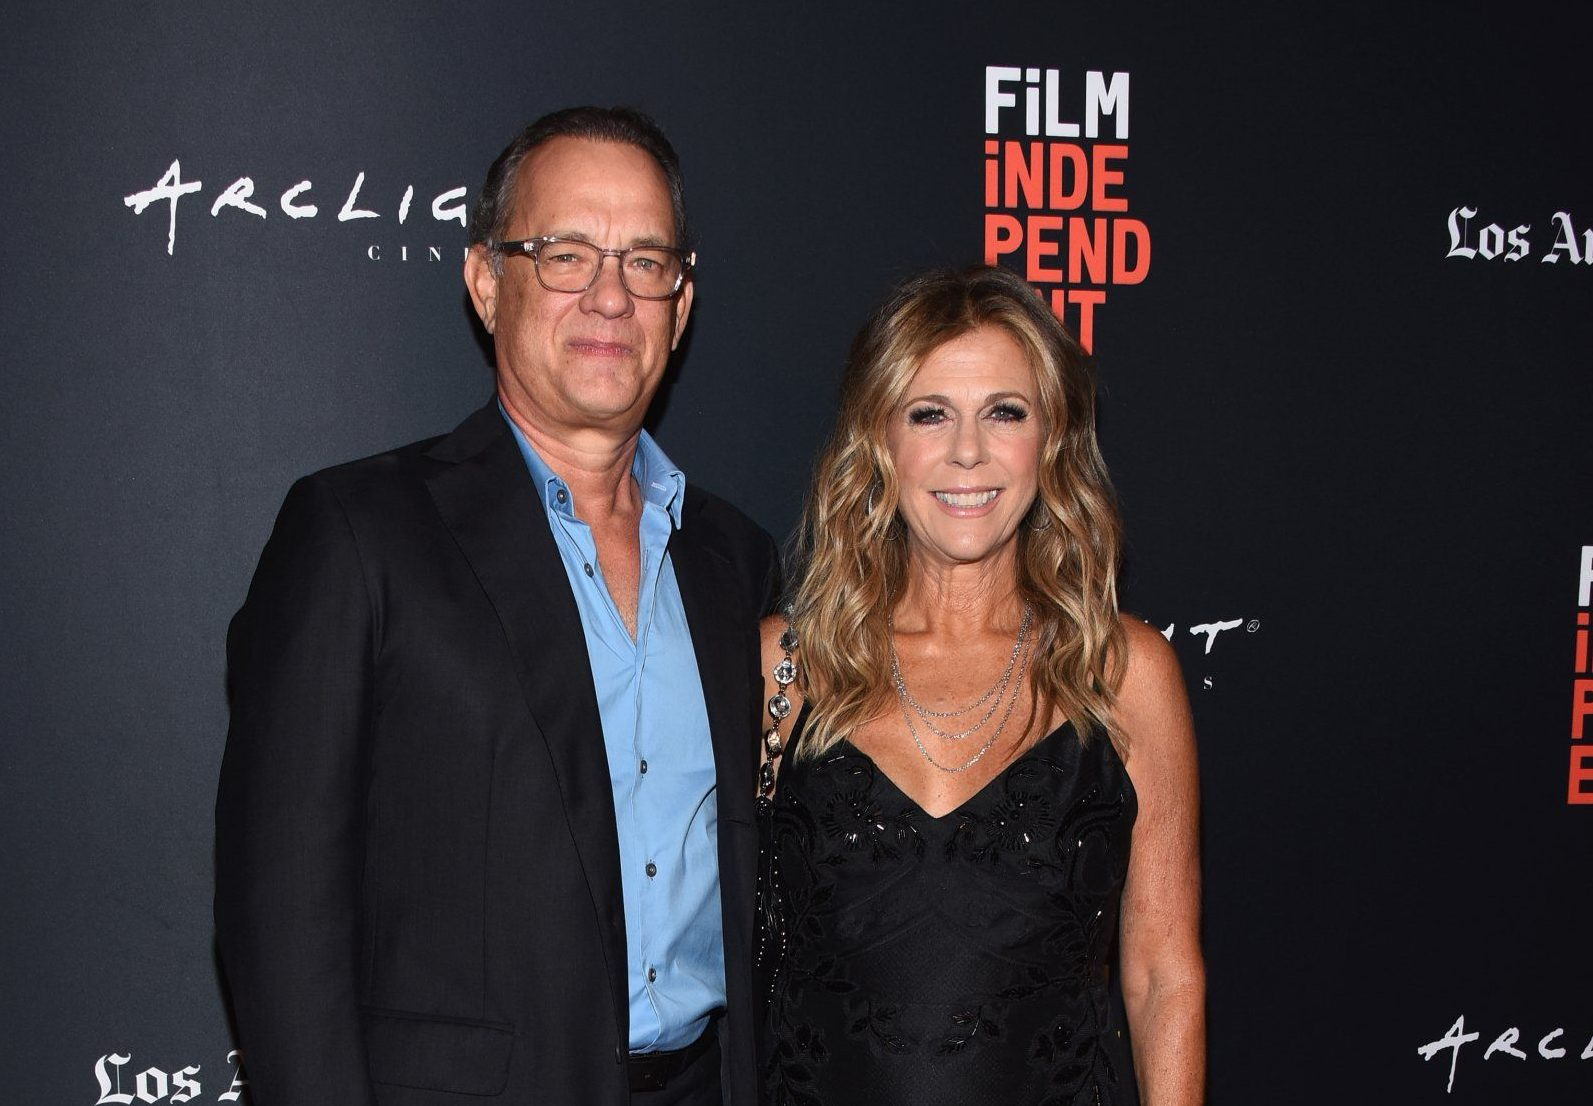 """CULVER CITY, CA - SEPTEMBER 21: Tom Hanks (L) and Rita Wilson attend the screening of """"Simple Wedding"""" during the 2018 LA Film Festival at ArcLight Culver City on September 21, 2018 in Culver City, California. (Photo by Araya Diaz/Getty Images for Film Independent)"""